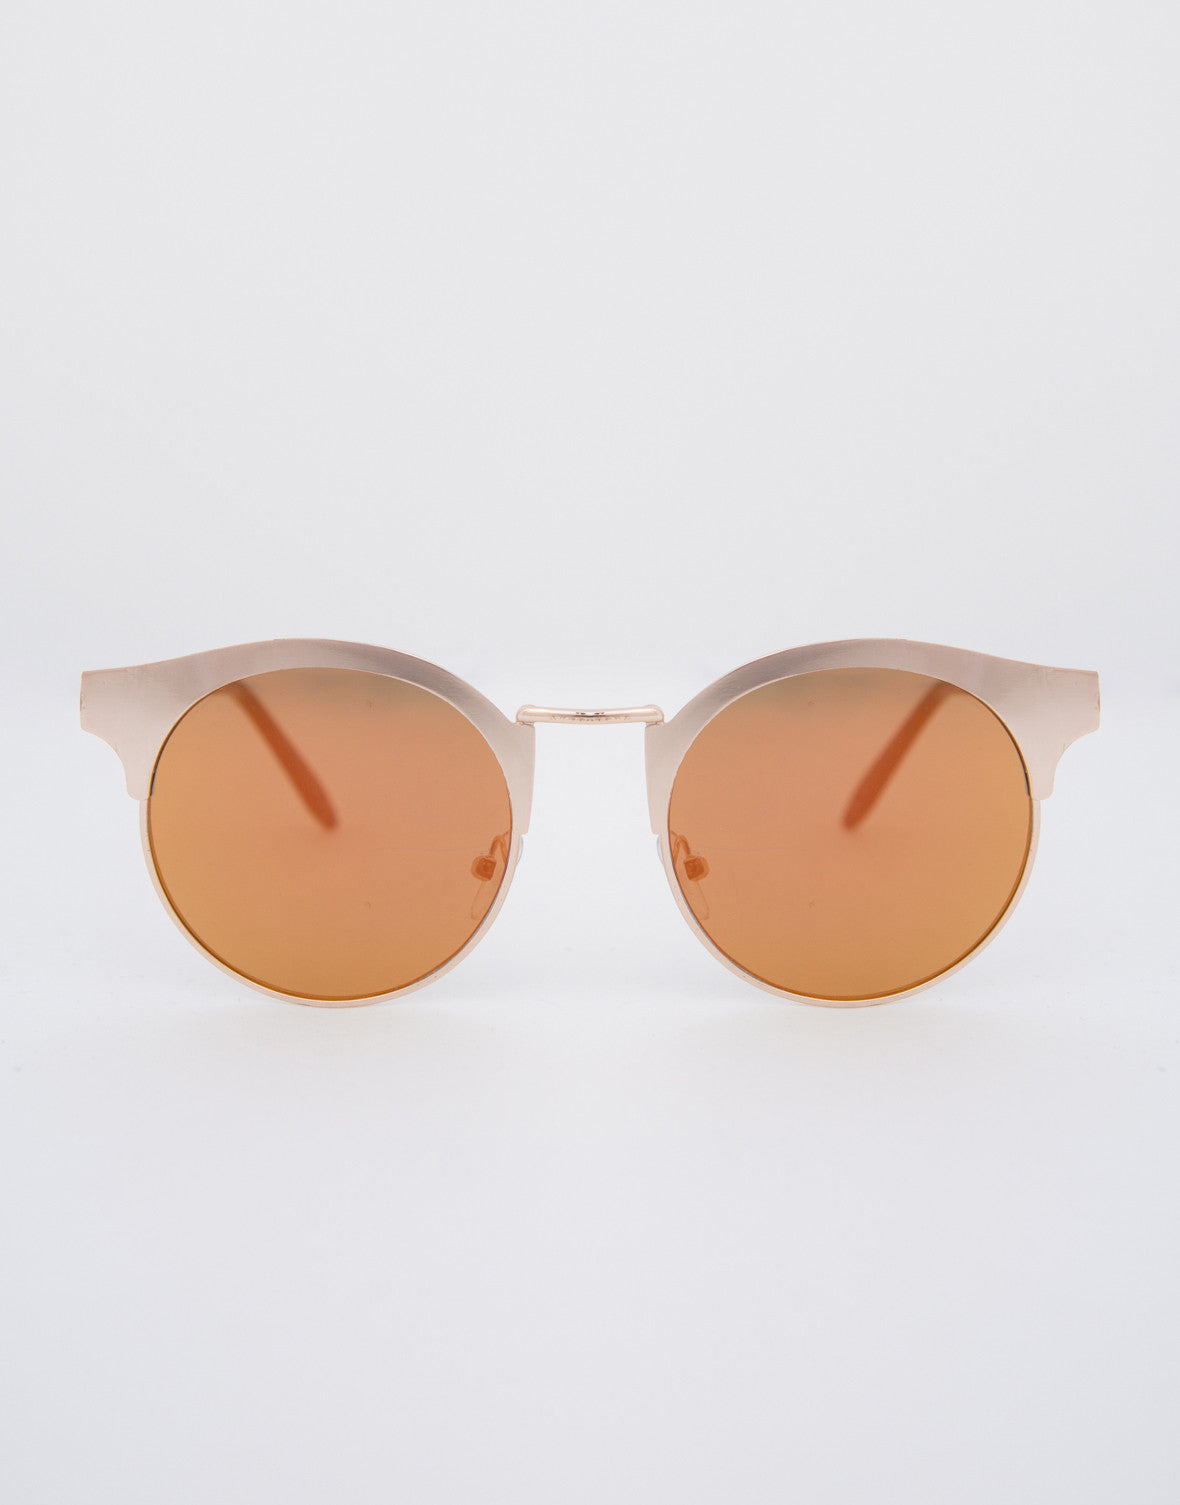 Metal Round Flat Sunglasses